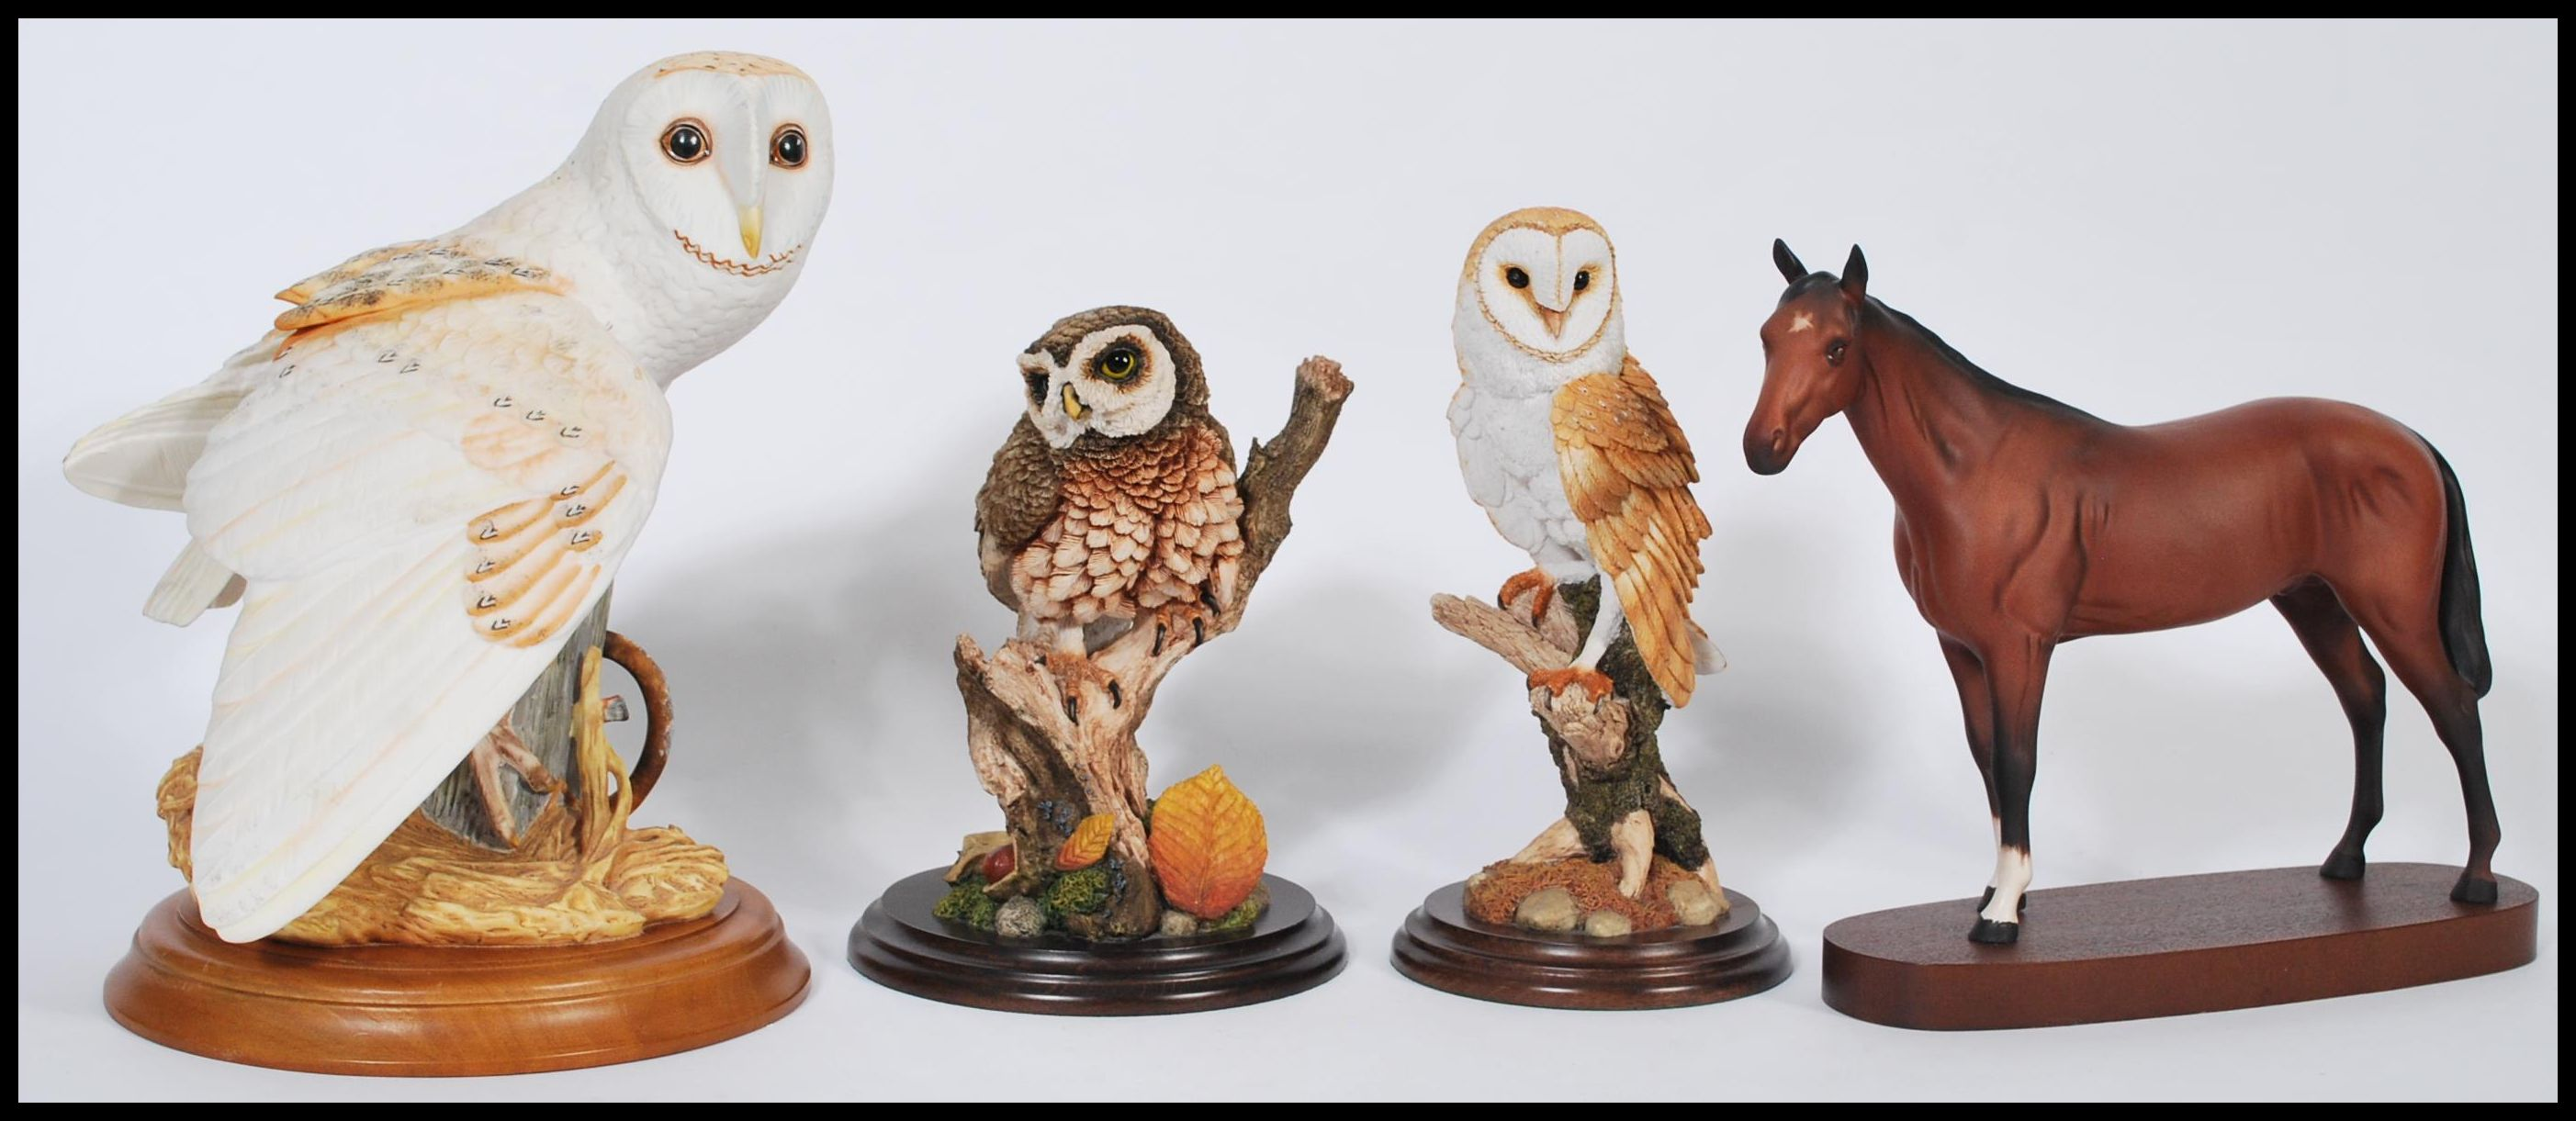 Lot 29 - A group of ceramic and resin animals to include a Royal Doulton ceramic horse on wooden base, a